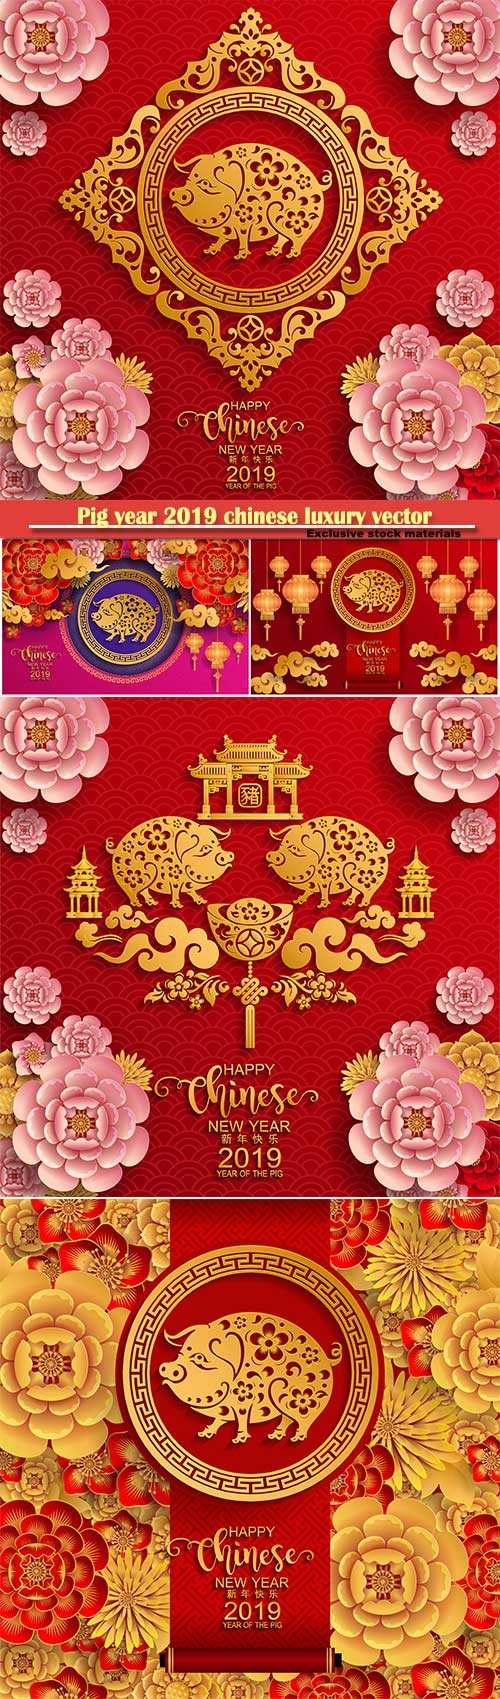 Pig year 2019 chinese luxury vector card # 5